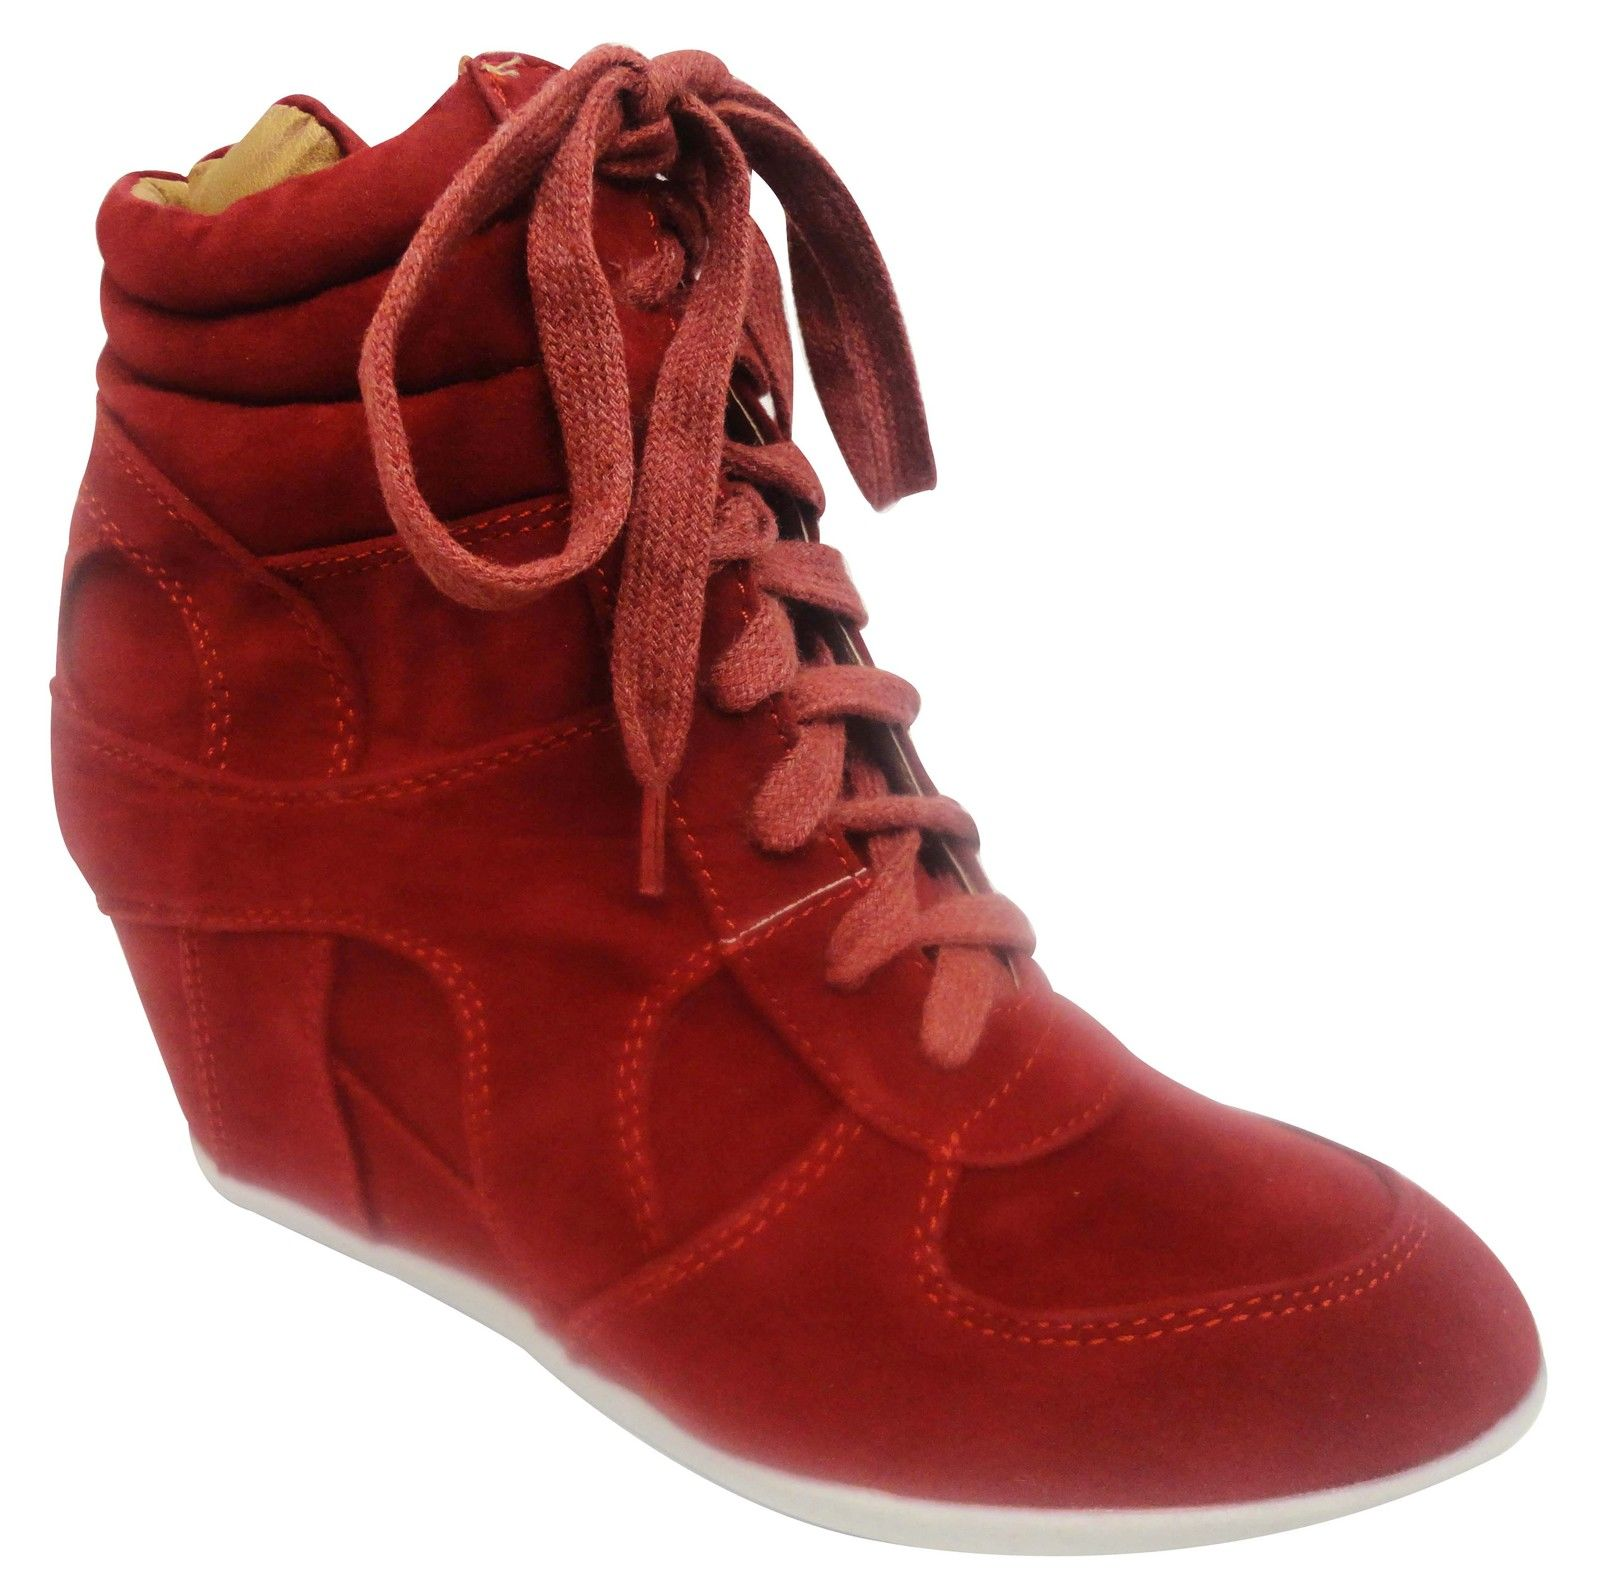 Ladies-Lace-Up-Hi-Top-Hidden-Wedge-Ankle-Trainer-Shoes-Women-Sneaker-Salt-Pepper